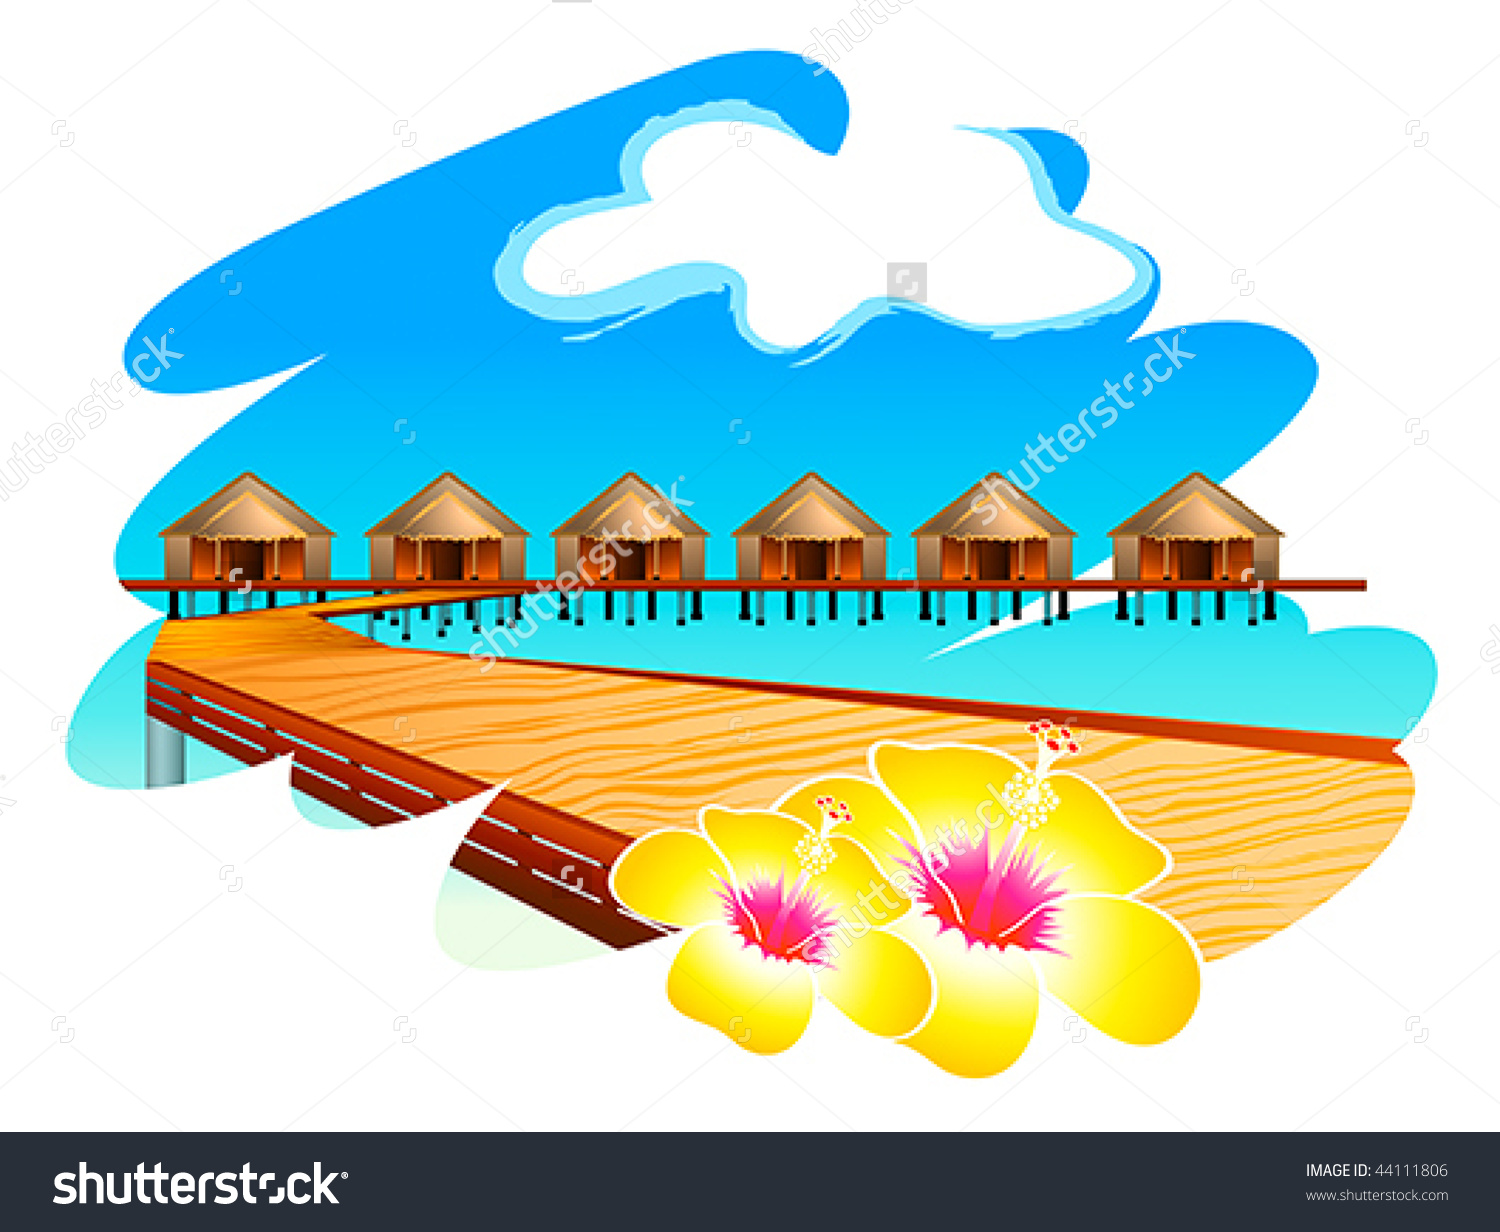 Wooden Footbridge Maldives Water Houses Hibiscus Stock Vector.